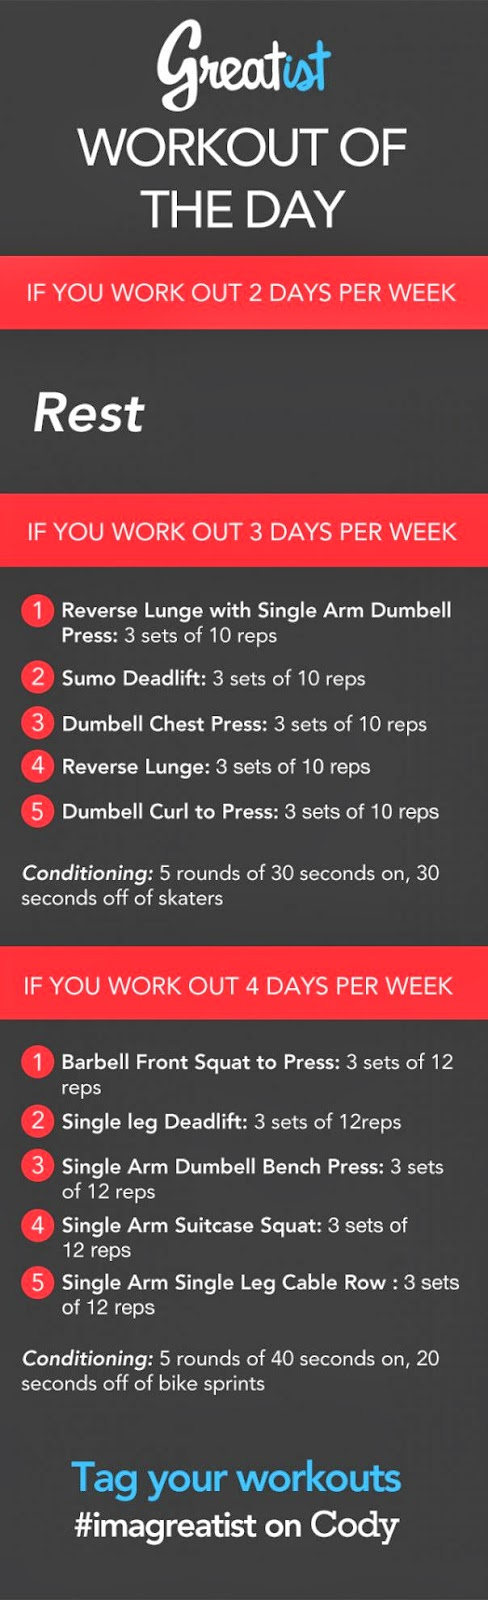 hover_share weight loss - greatest workout of the day